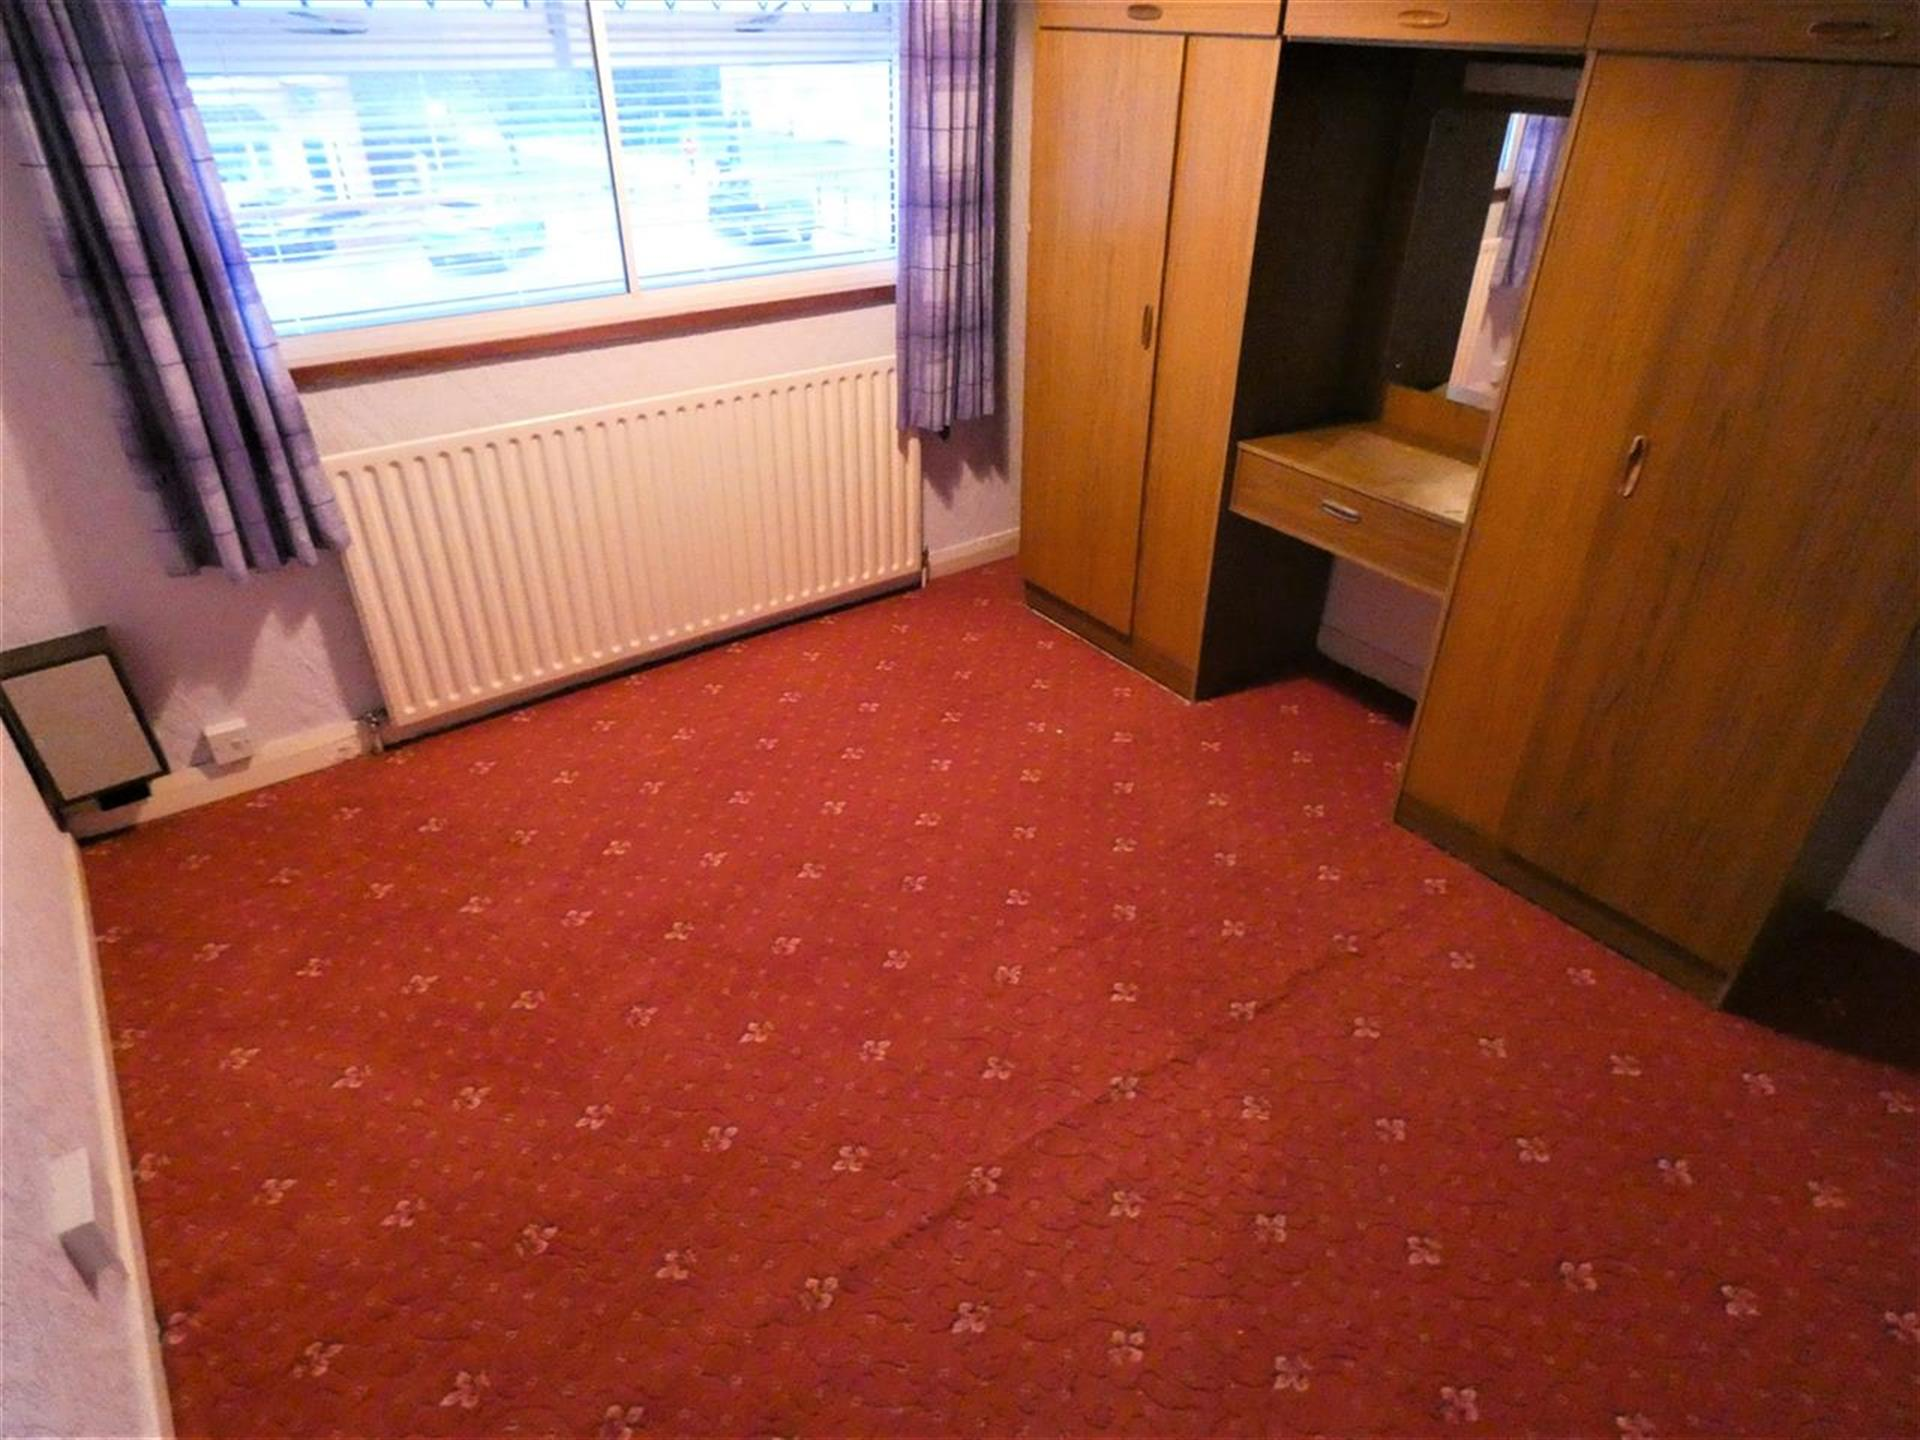 4 Bedroom End Terraced House For Sale - Bedroom One